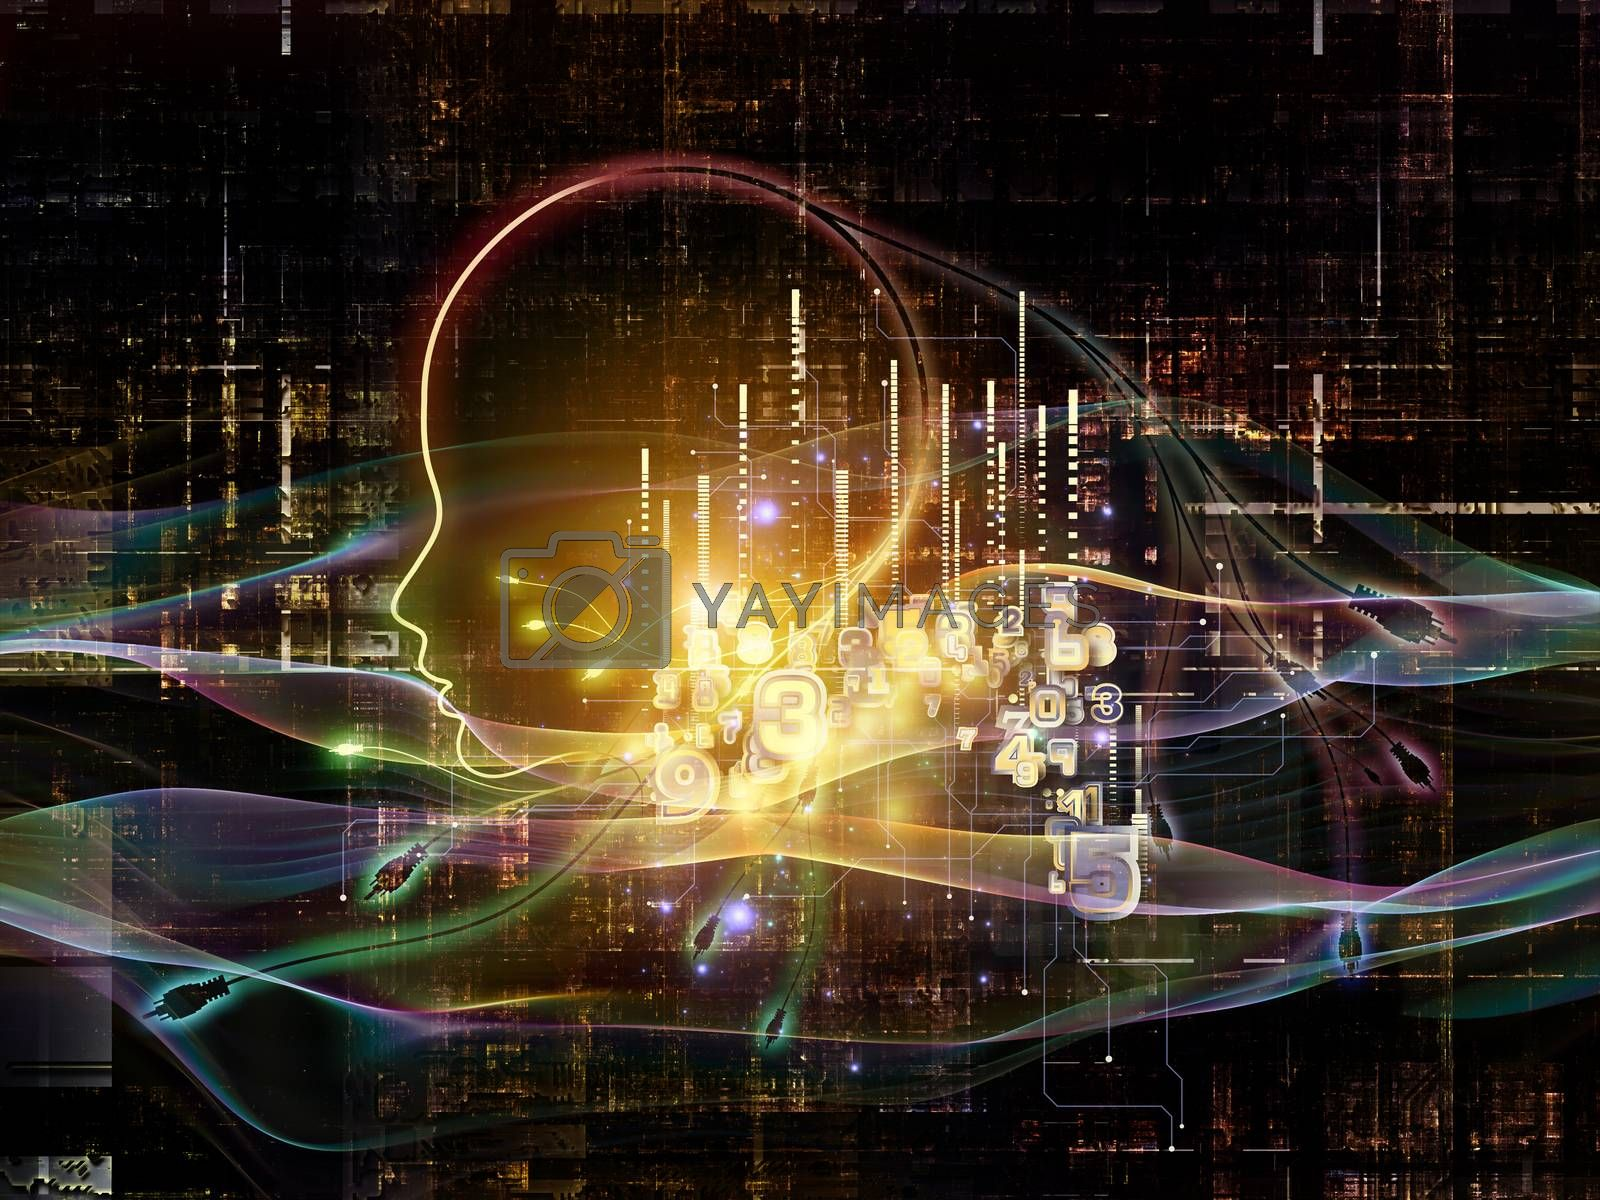 Artificial Intelligence series. Design composed of human profile and numbers as a metaphor on the subject of thinking, logic, computers and future technology